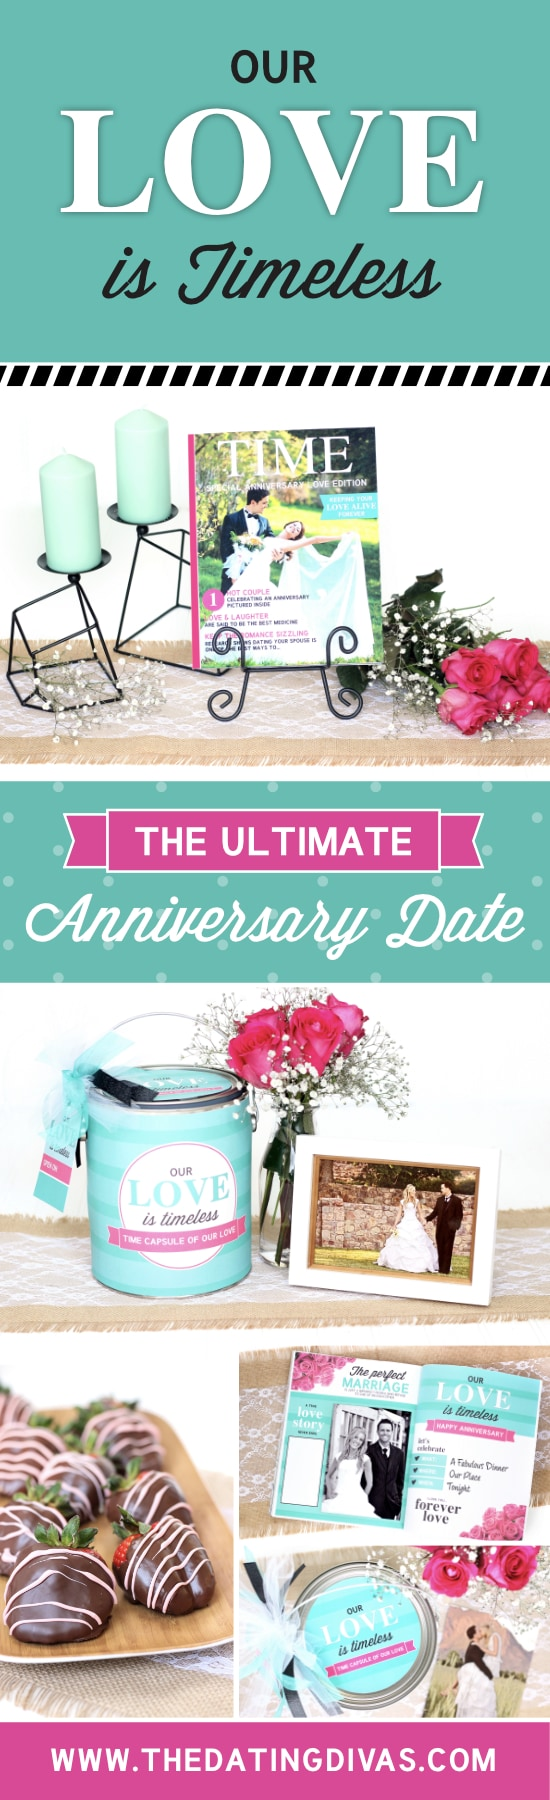 Our Love Is Timeless Anniversary Date